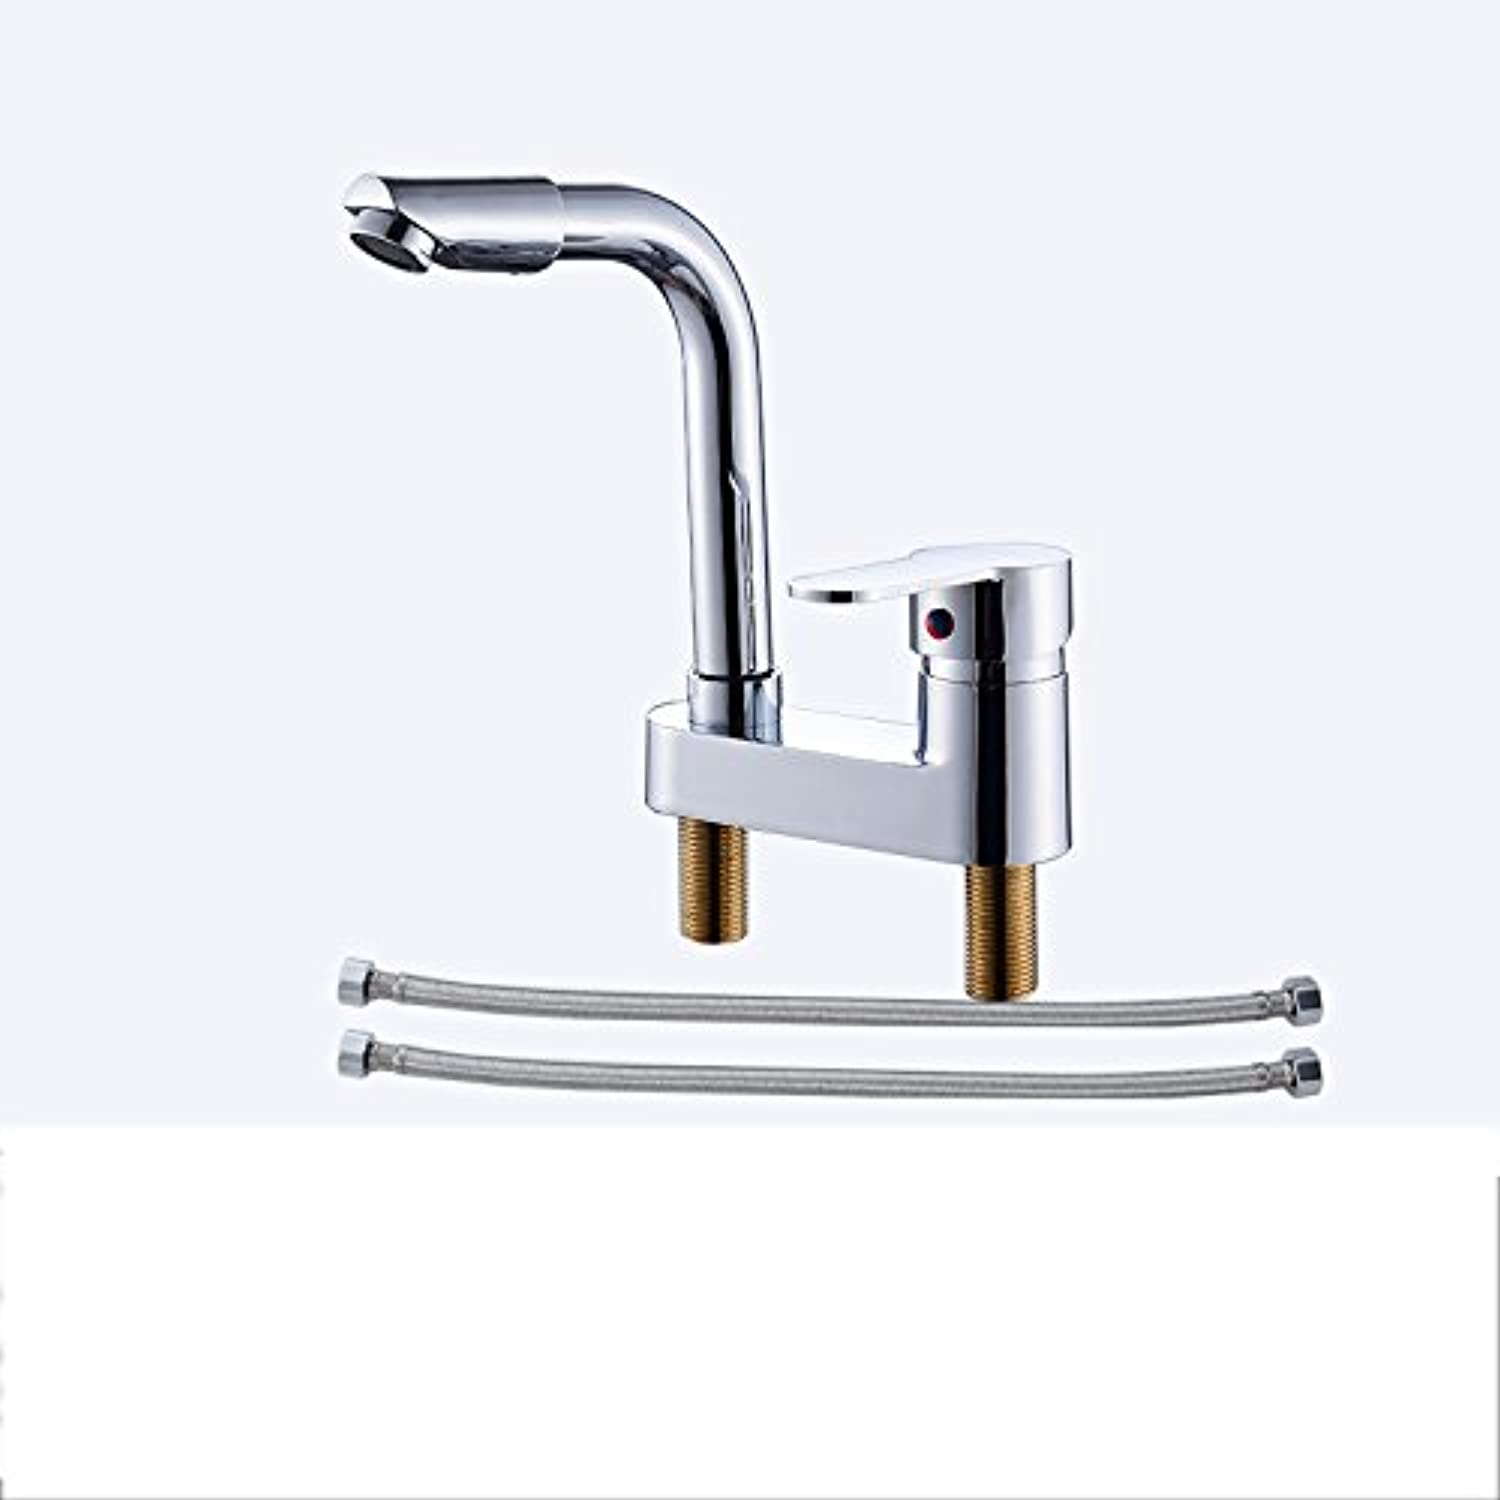 Hlluya Professional Sink Mixer Tap Kitchen Faucet Three holes and cold water faucet Single Handle, B